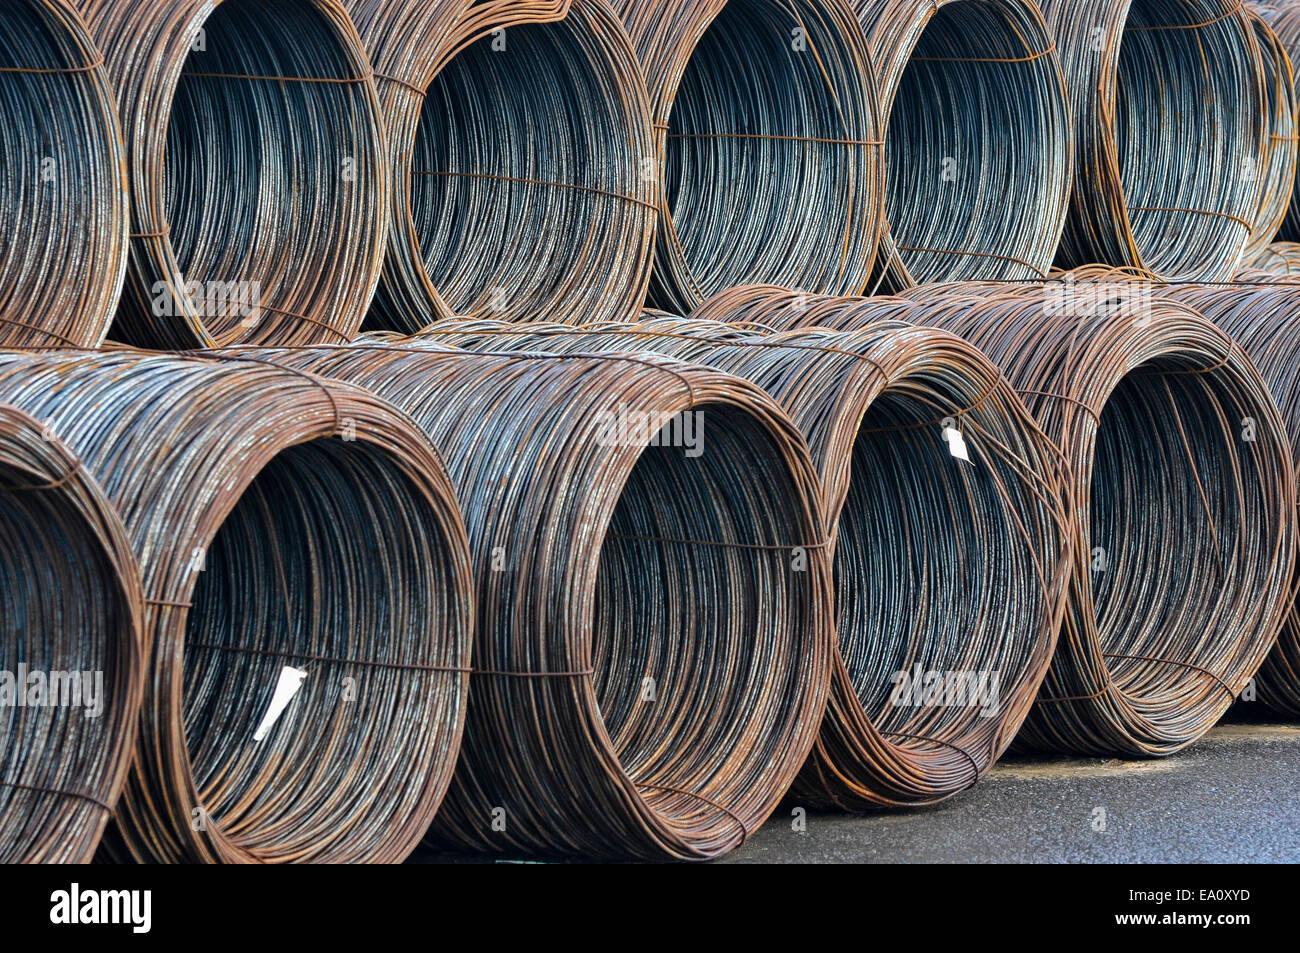 Metal Wire Coils Stock Photos & Metal Wire Coils Stock Images - Alamy